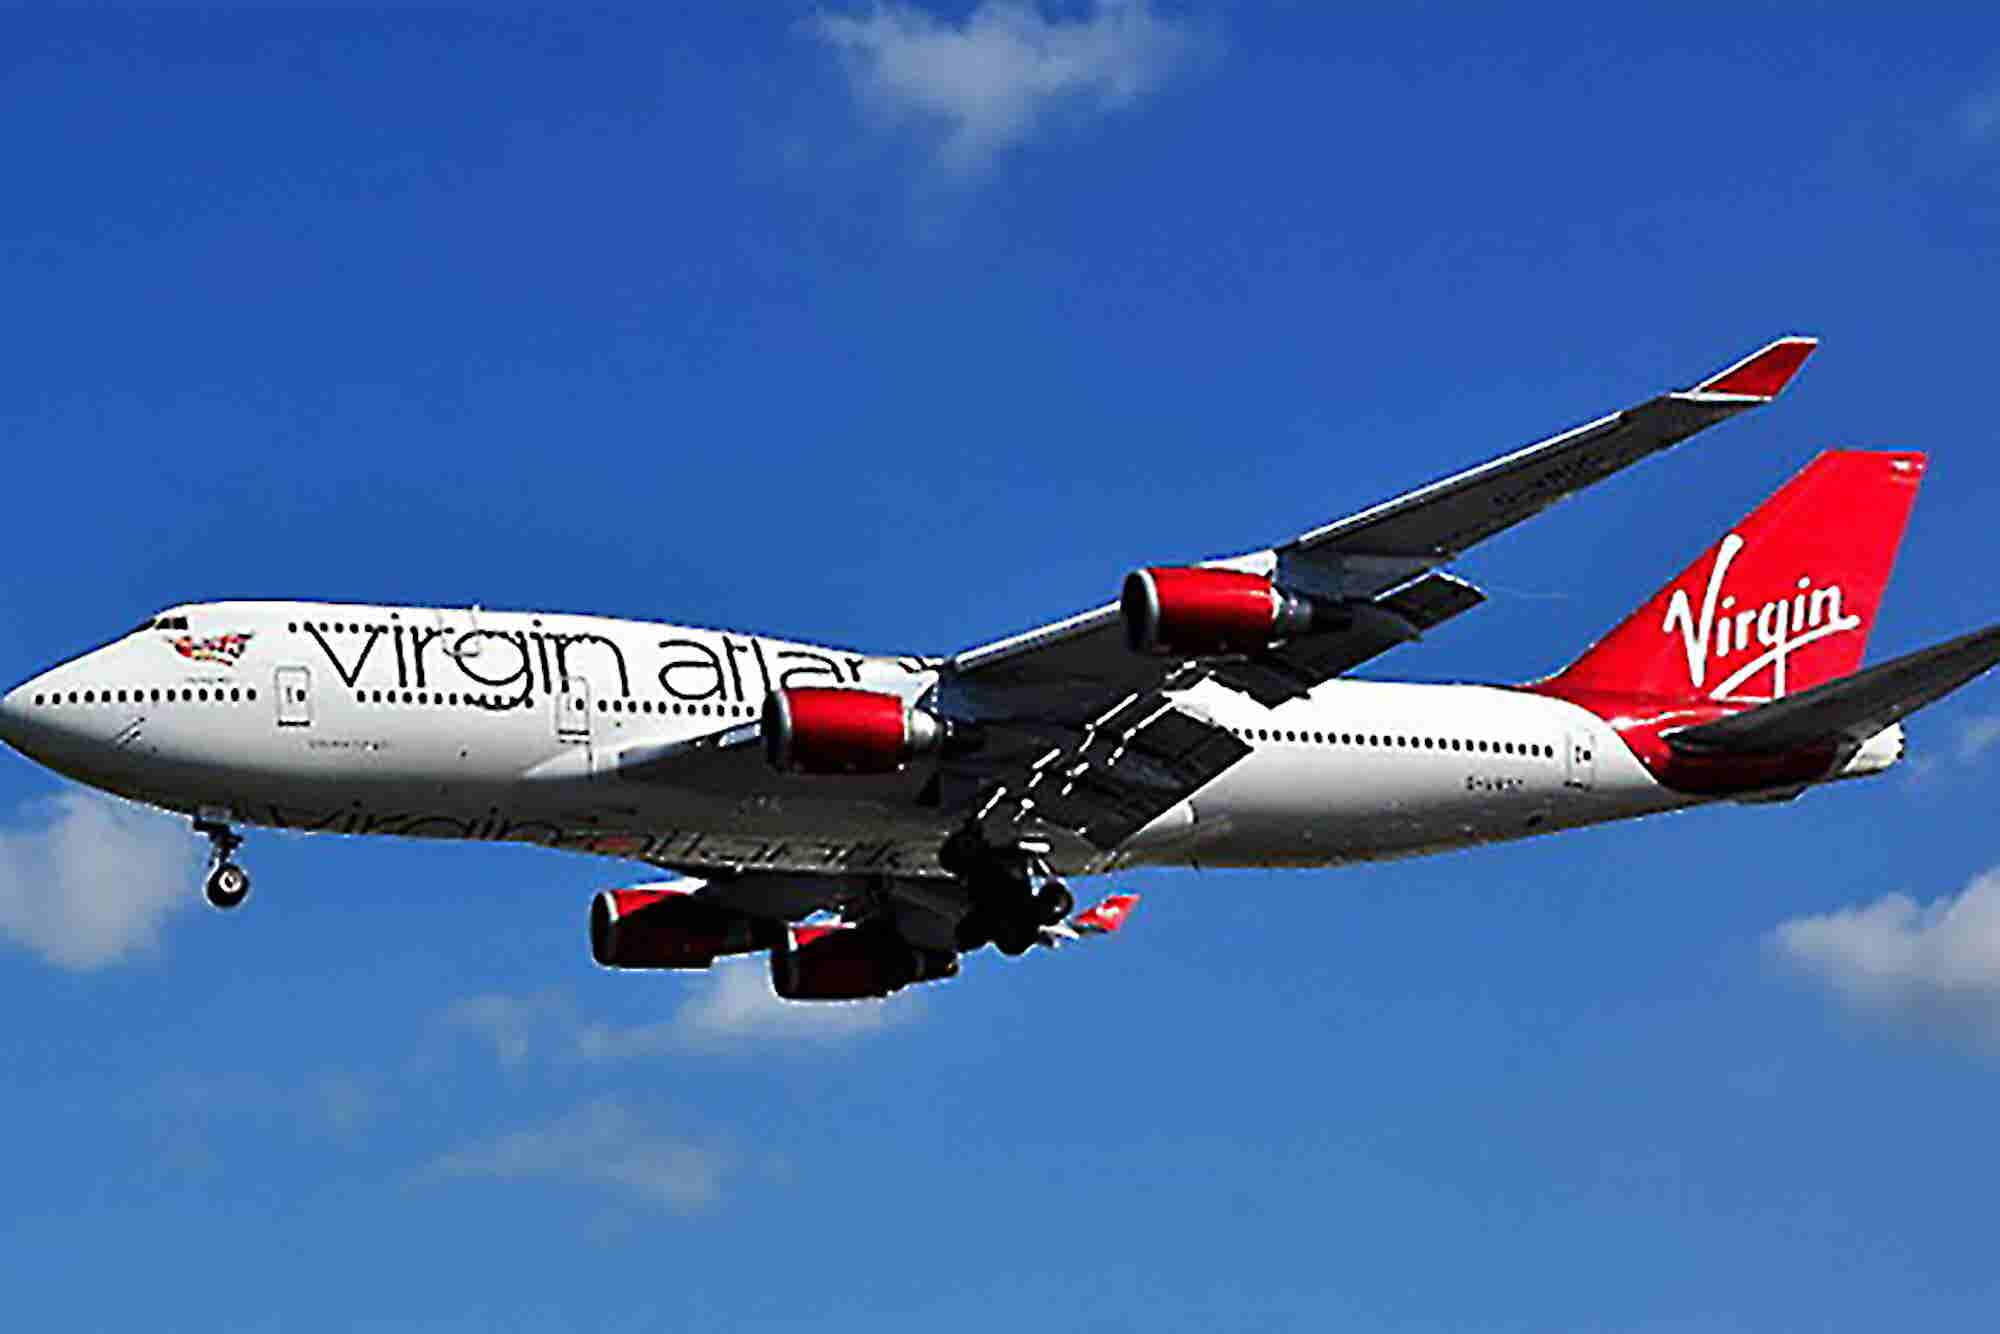 Turbulence at Virgin: How the Airline Can Get Back to Smooth Sailing